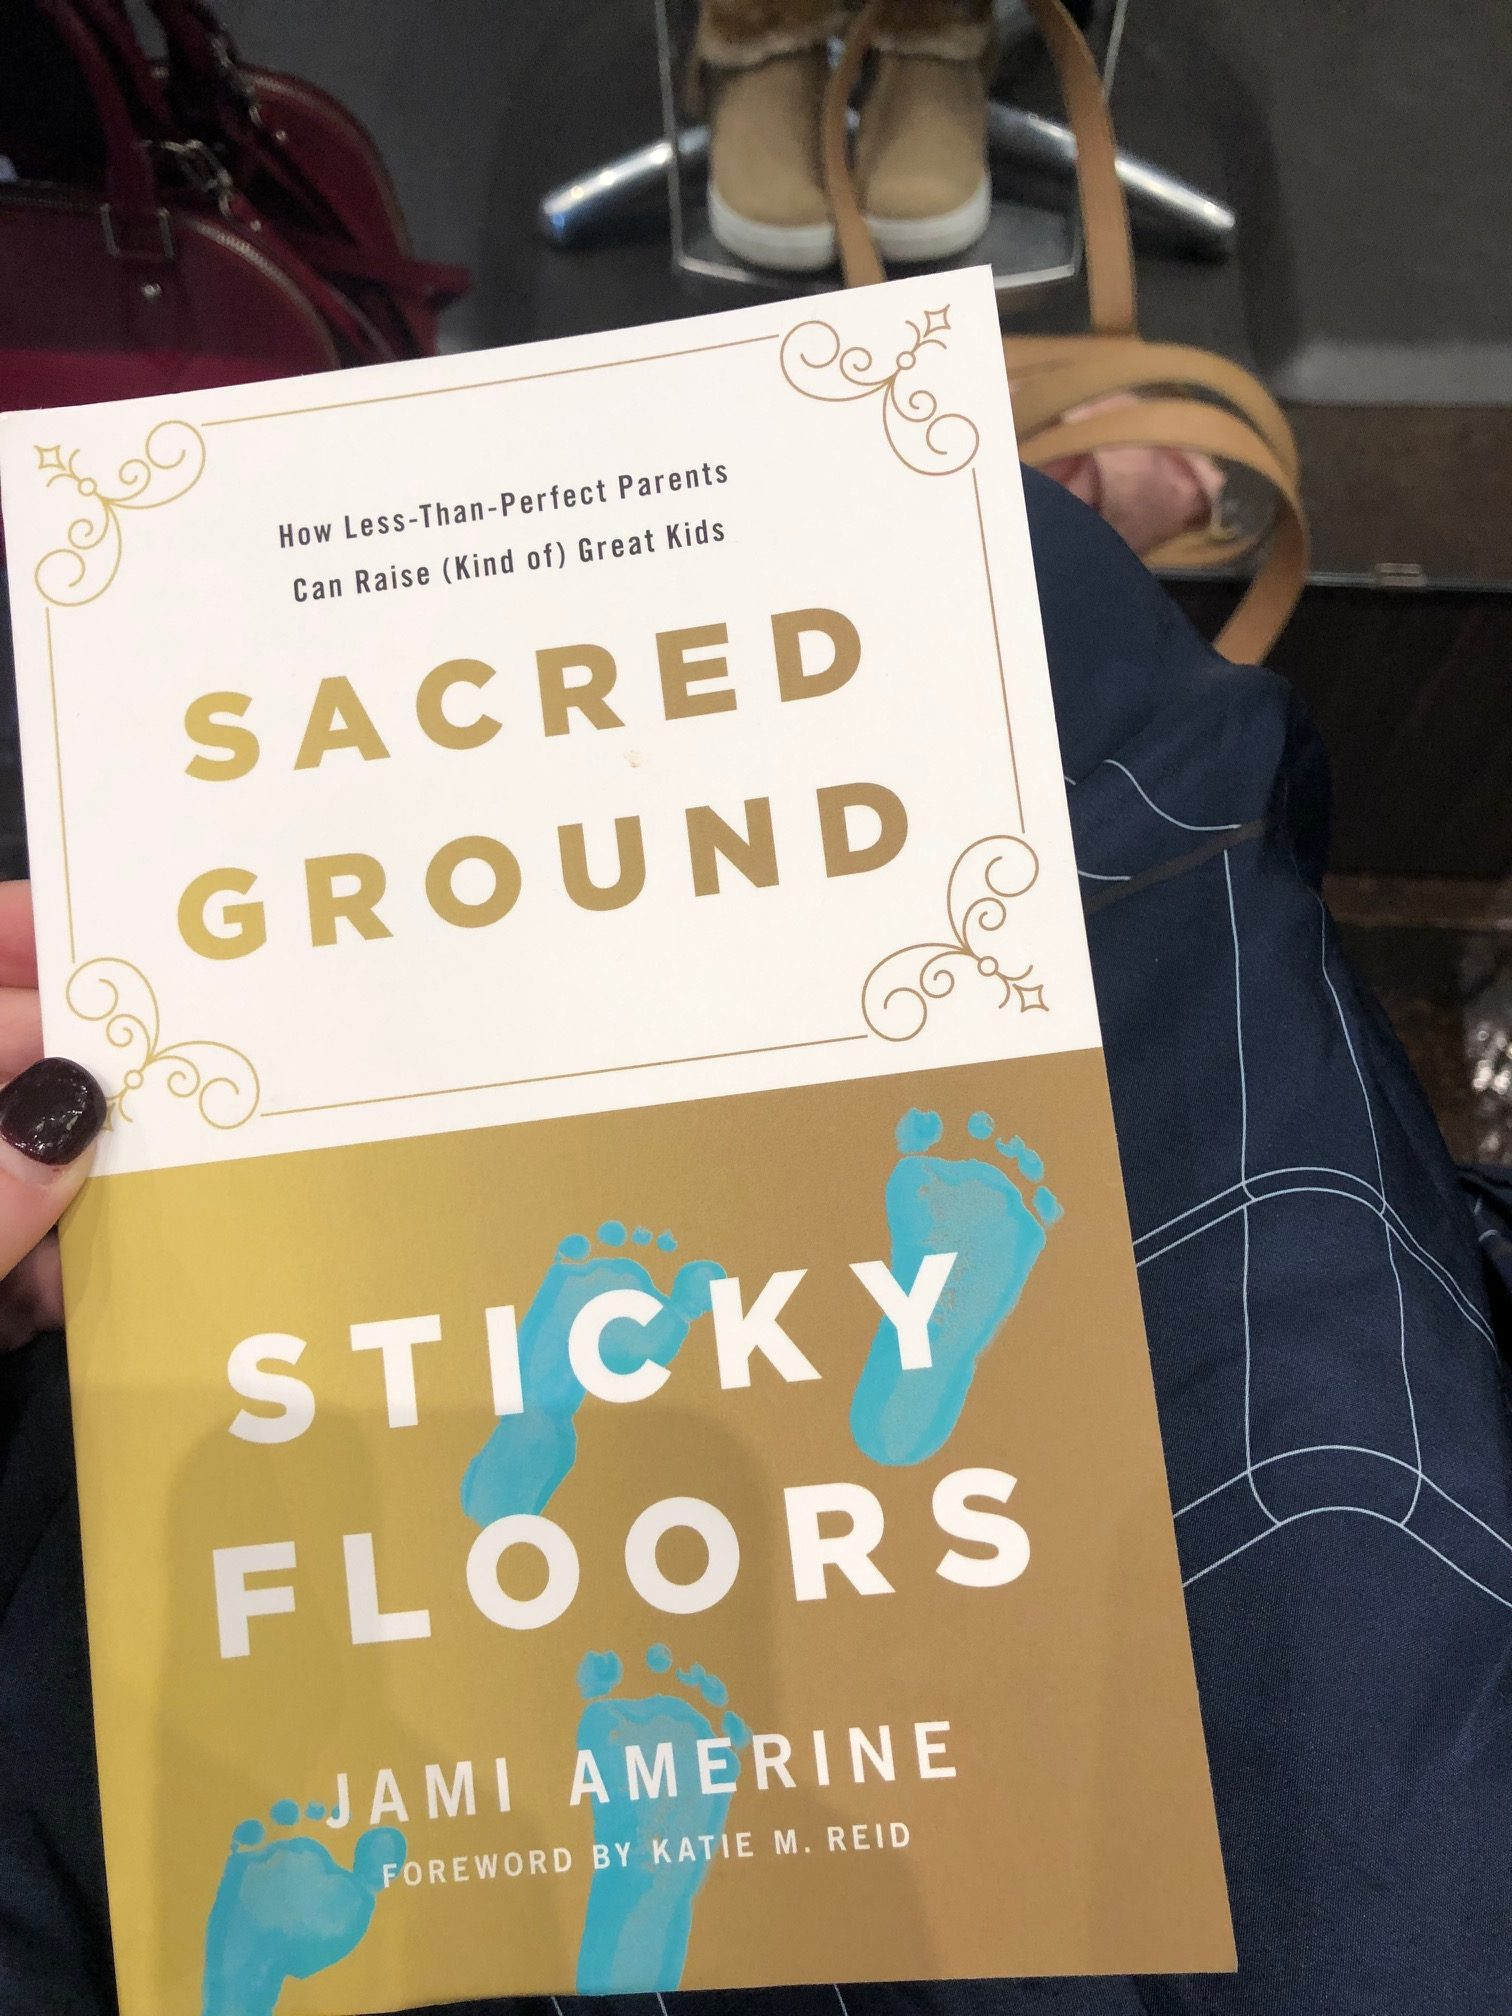 a photo of Sacred Ground, Sticky Floors